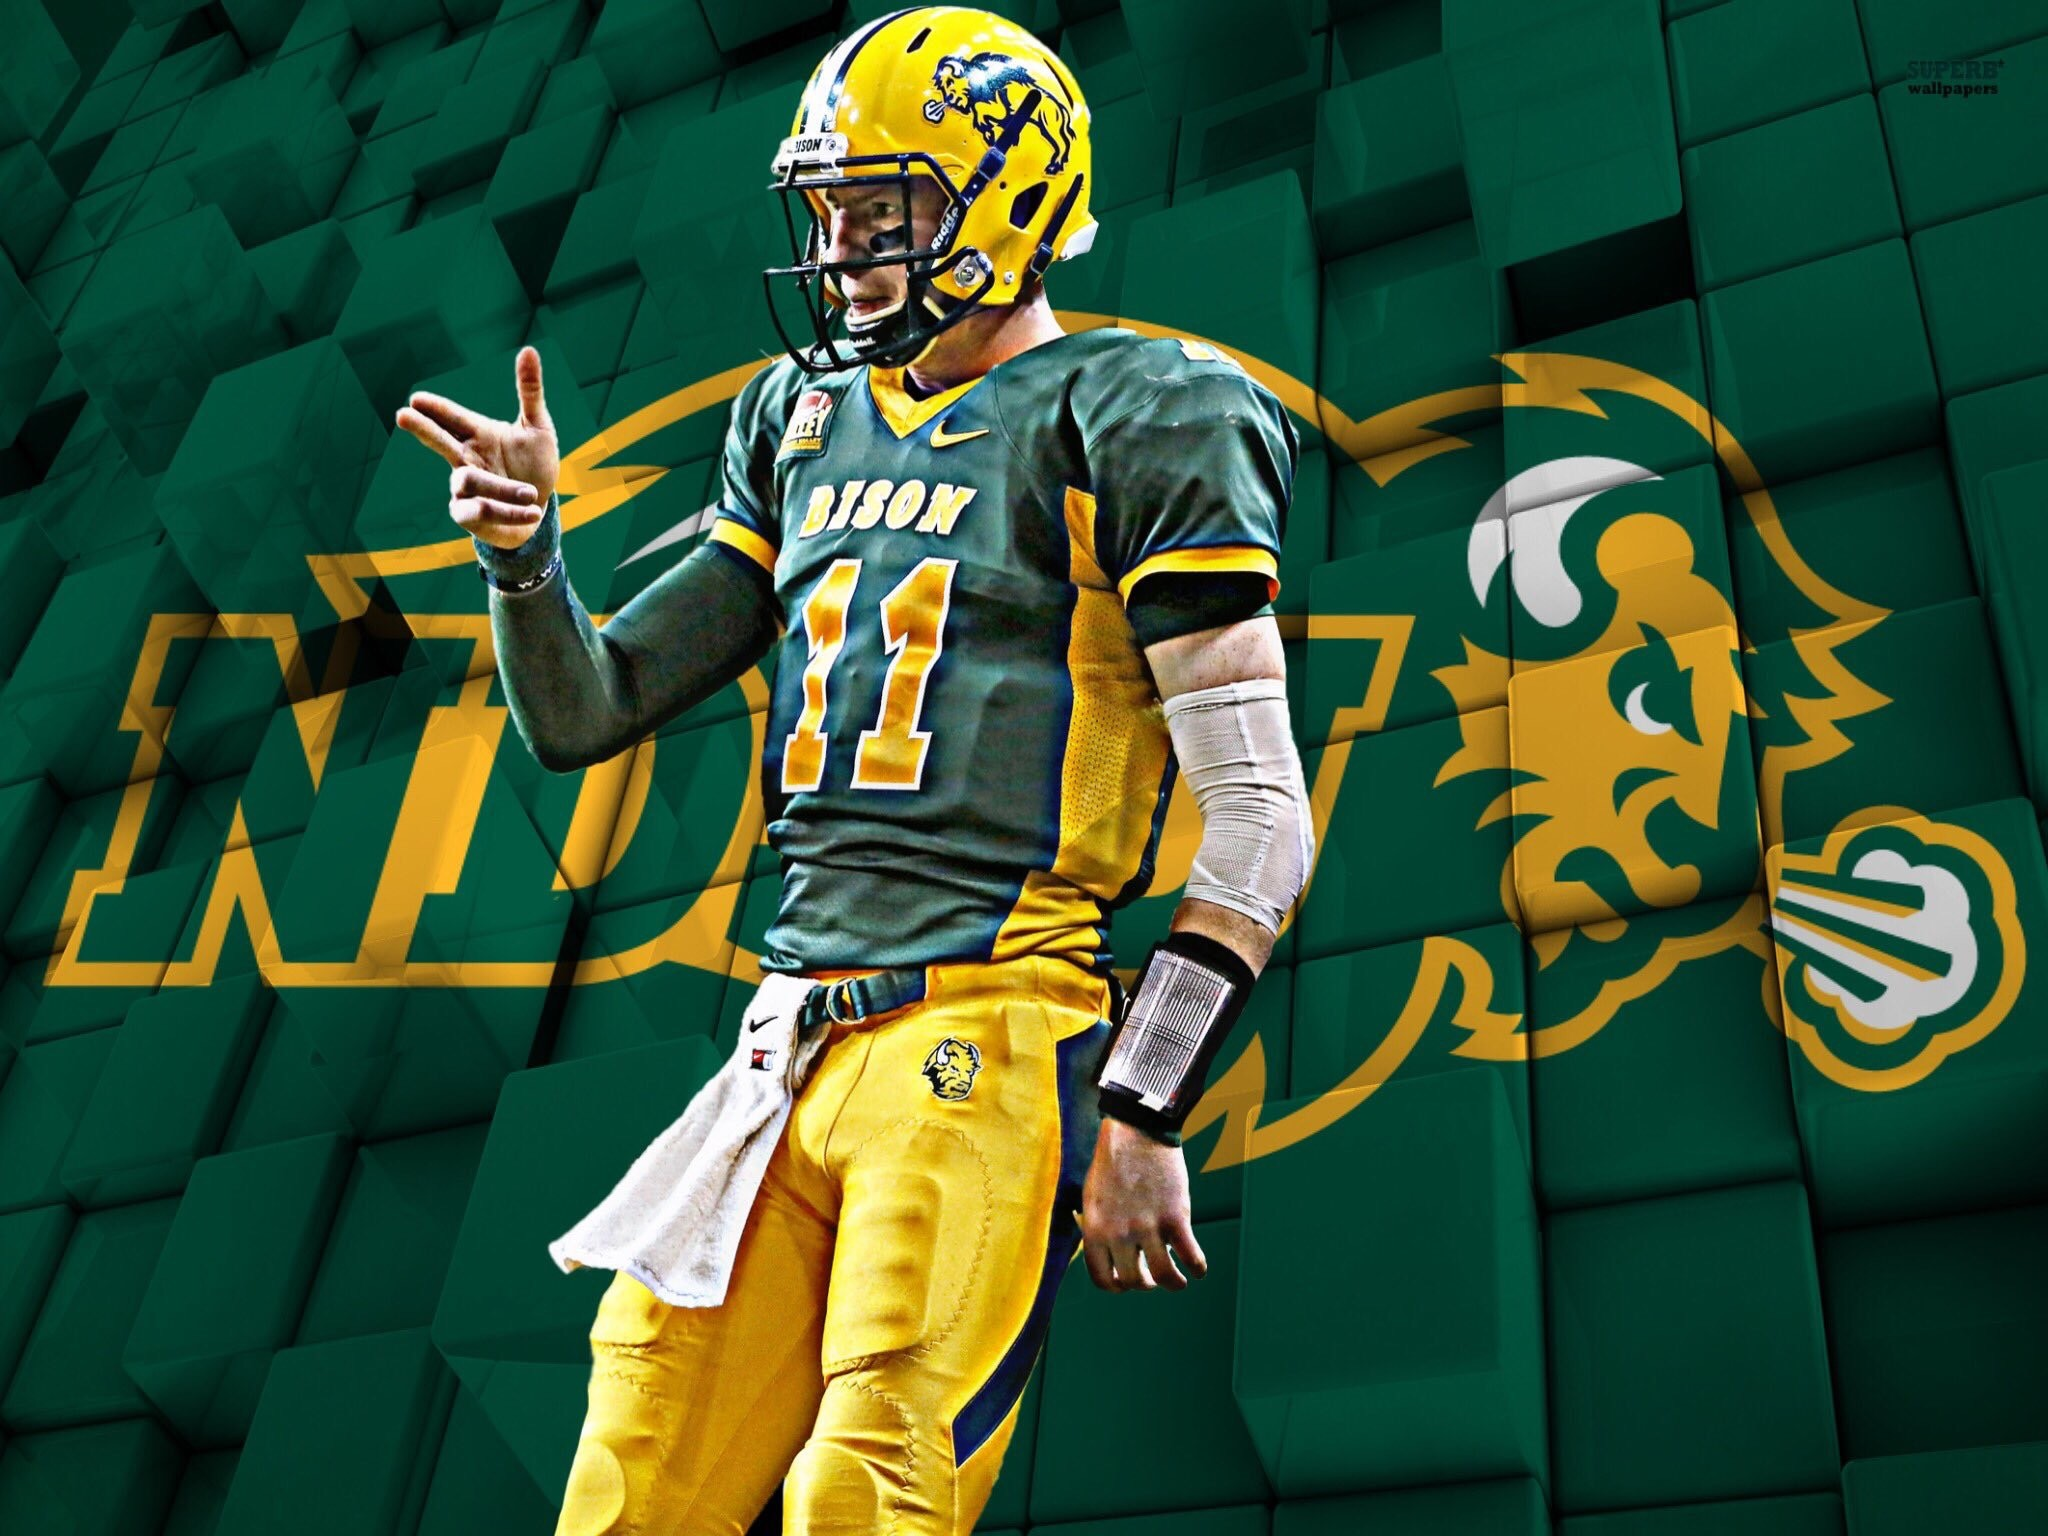 Carson Wentz could be the first QB selected and the highest NDSU player ever selected